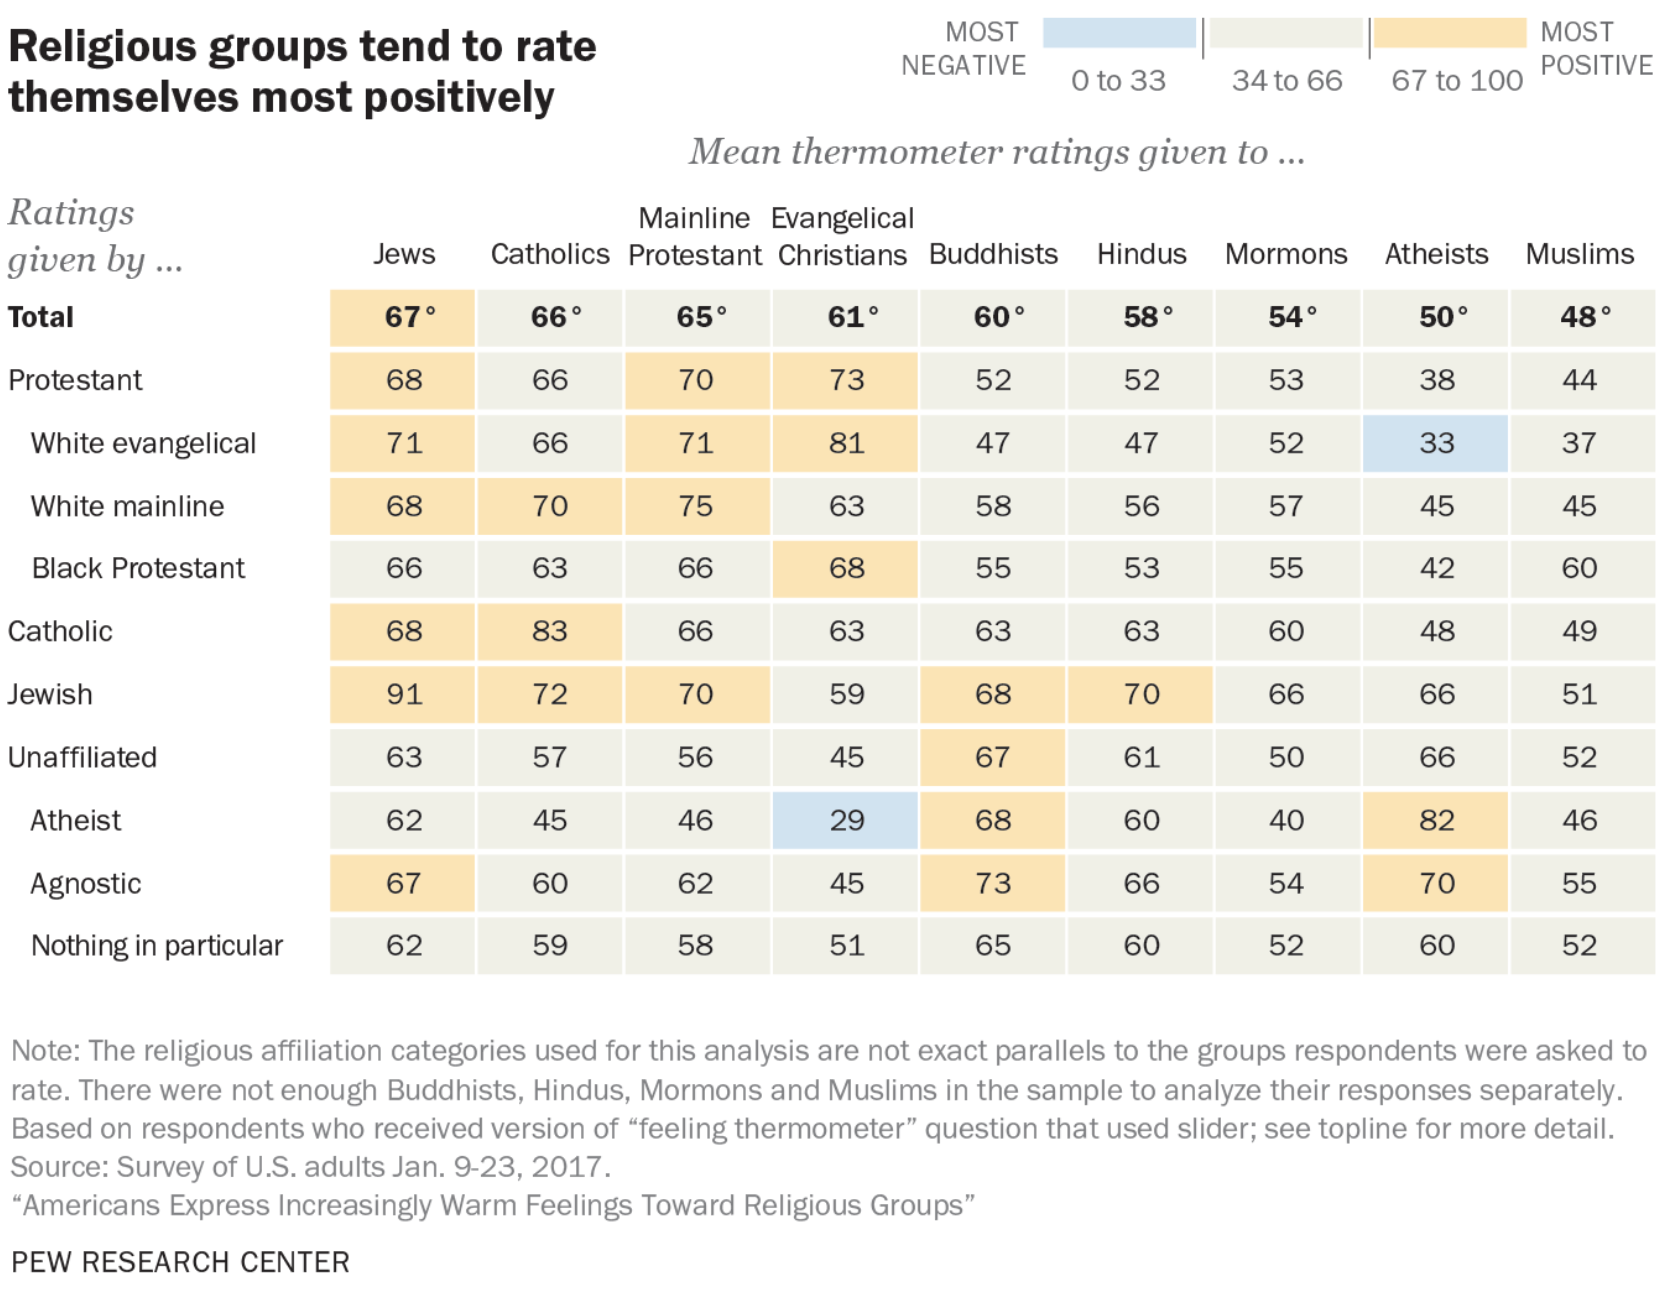 'You're getting warmer' - Pew studies Americans' feelings toward religious groups, including Mormons